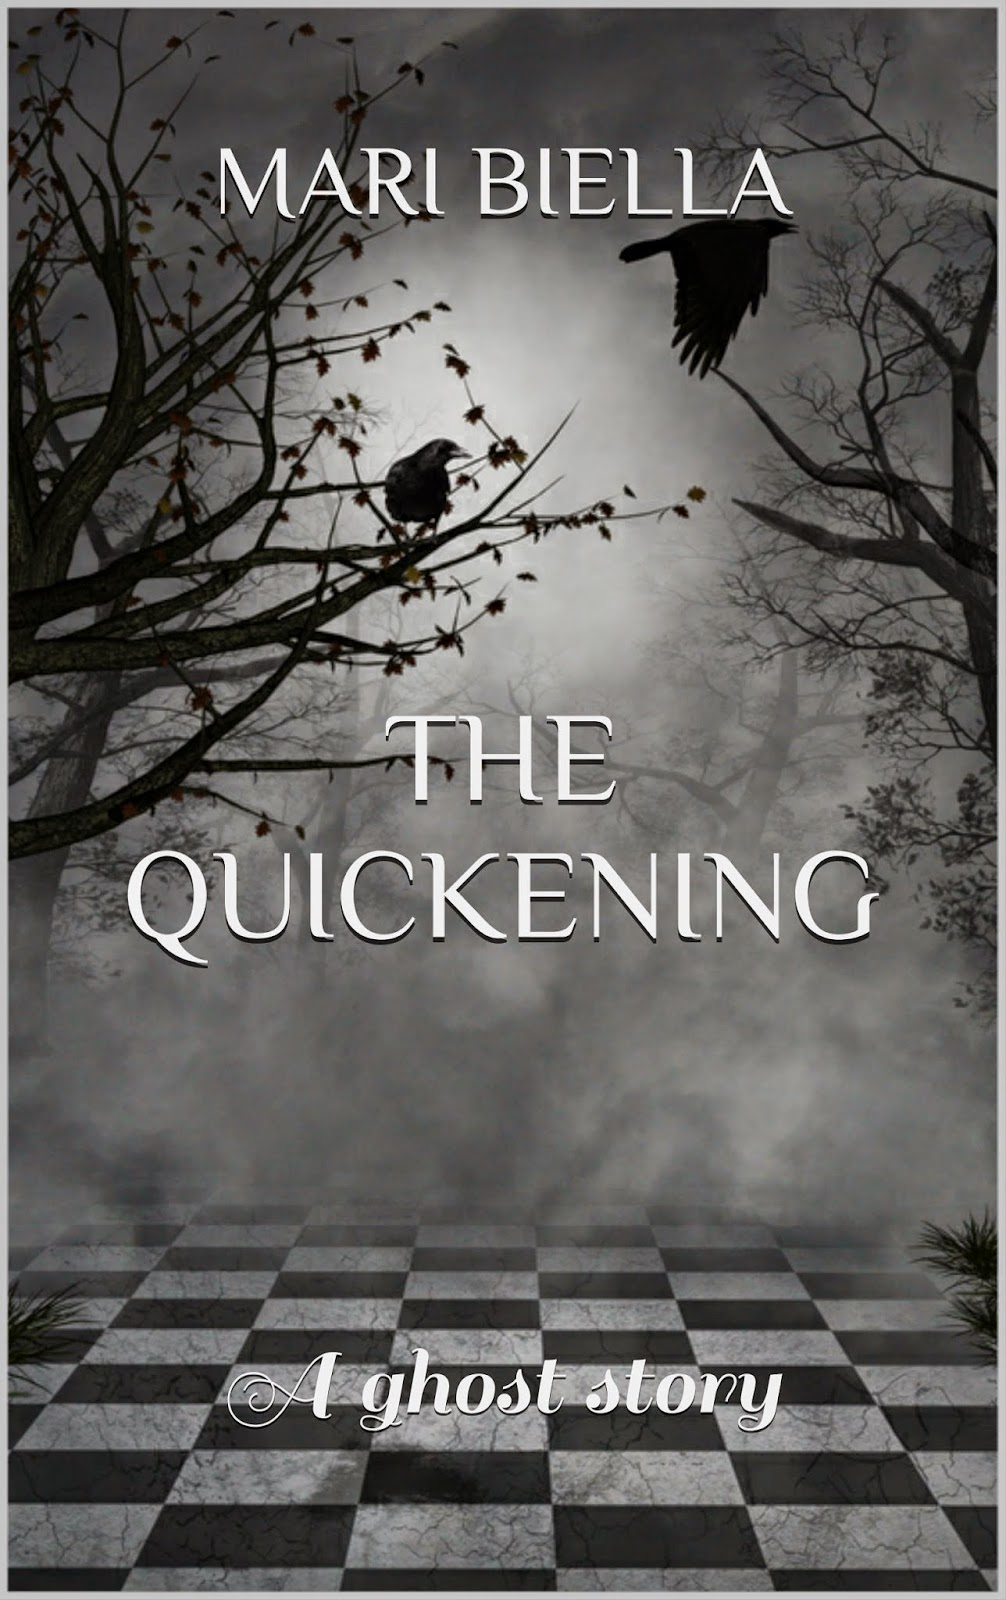 http://www.amazon.co.uk/Quickening-Ghost-Story-Mari-Biella-ebook/dp/B007TIPVGO/ref=sr_1_7?s=digital-text&ie=UTF8&qid=1424431275&sr=1-7&keywords=the+quickening